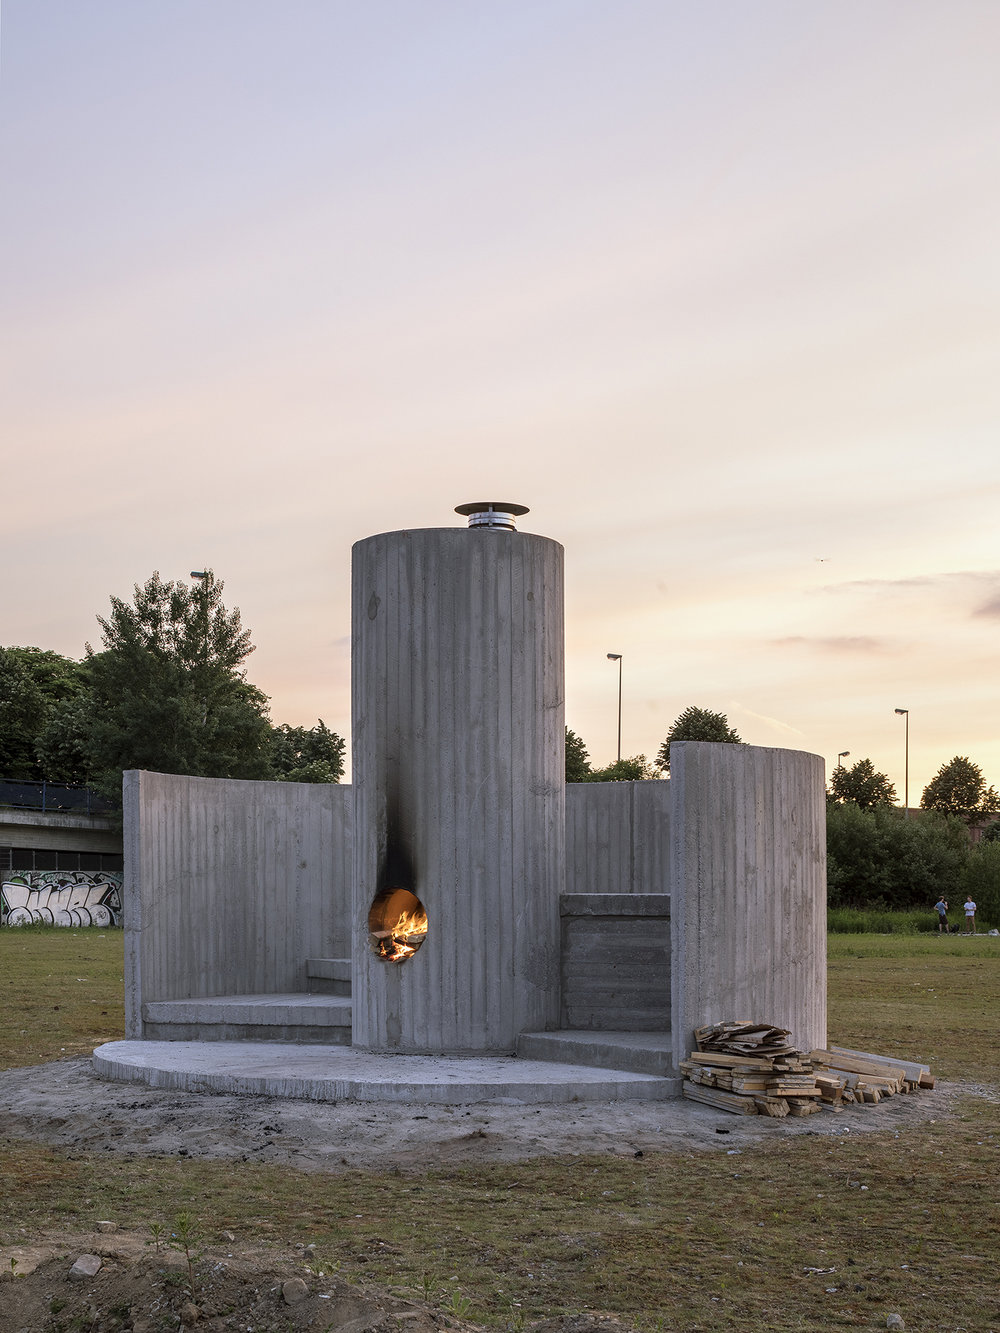 Oscar Tuazon, Burn the Formwork © Skulptur Projekte 2017. Photo: Henning Rogge.